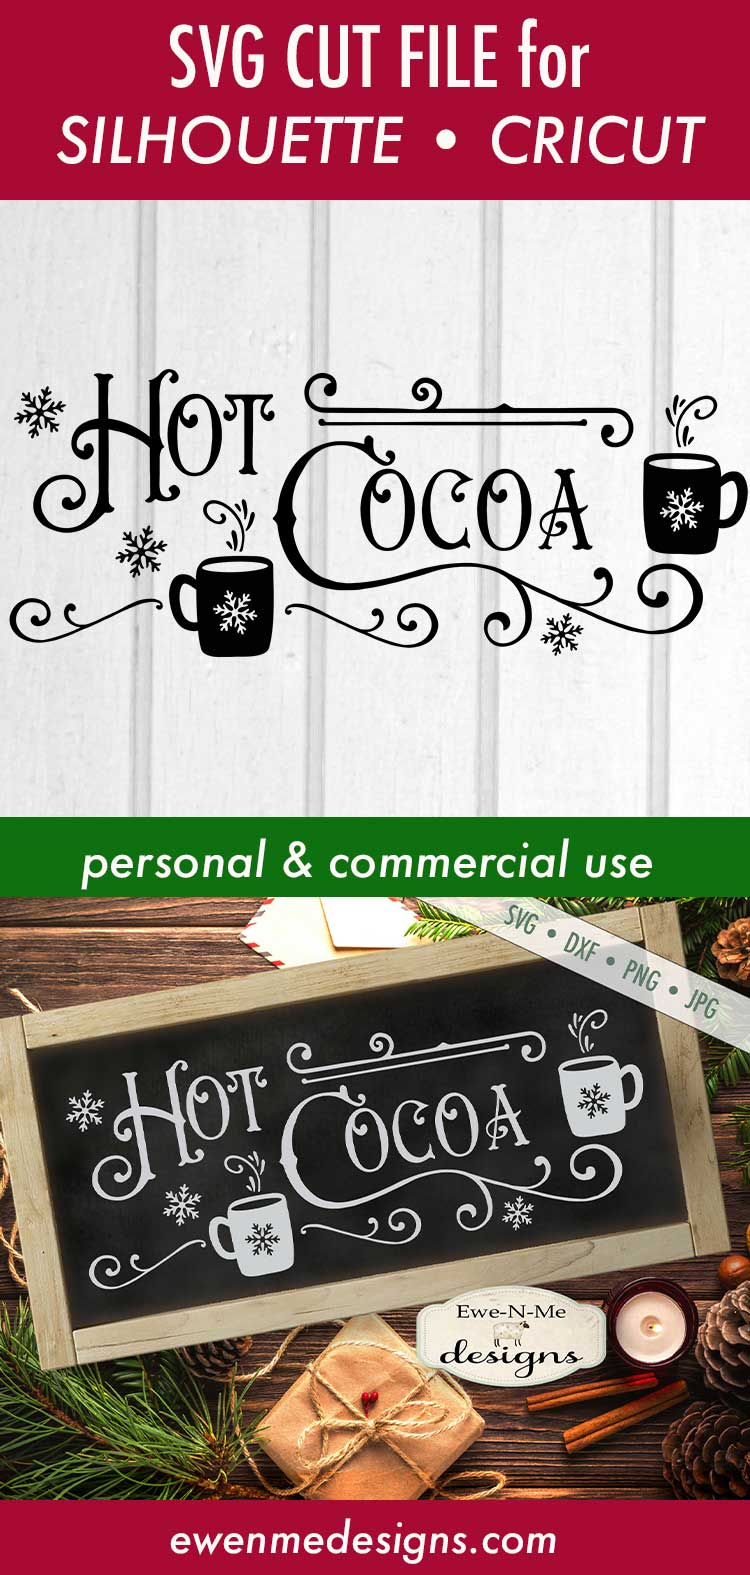 Hot Cocoa - Cocoa Mugs - Winter Christmas - SVG DXF Files example image 3